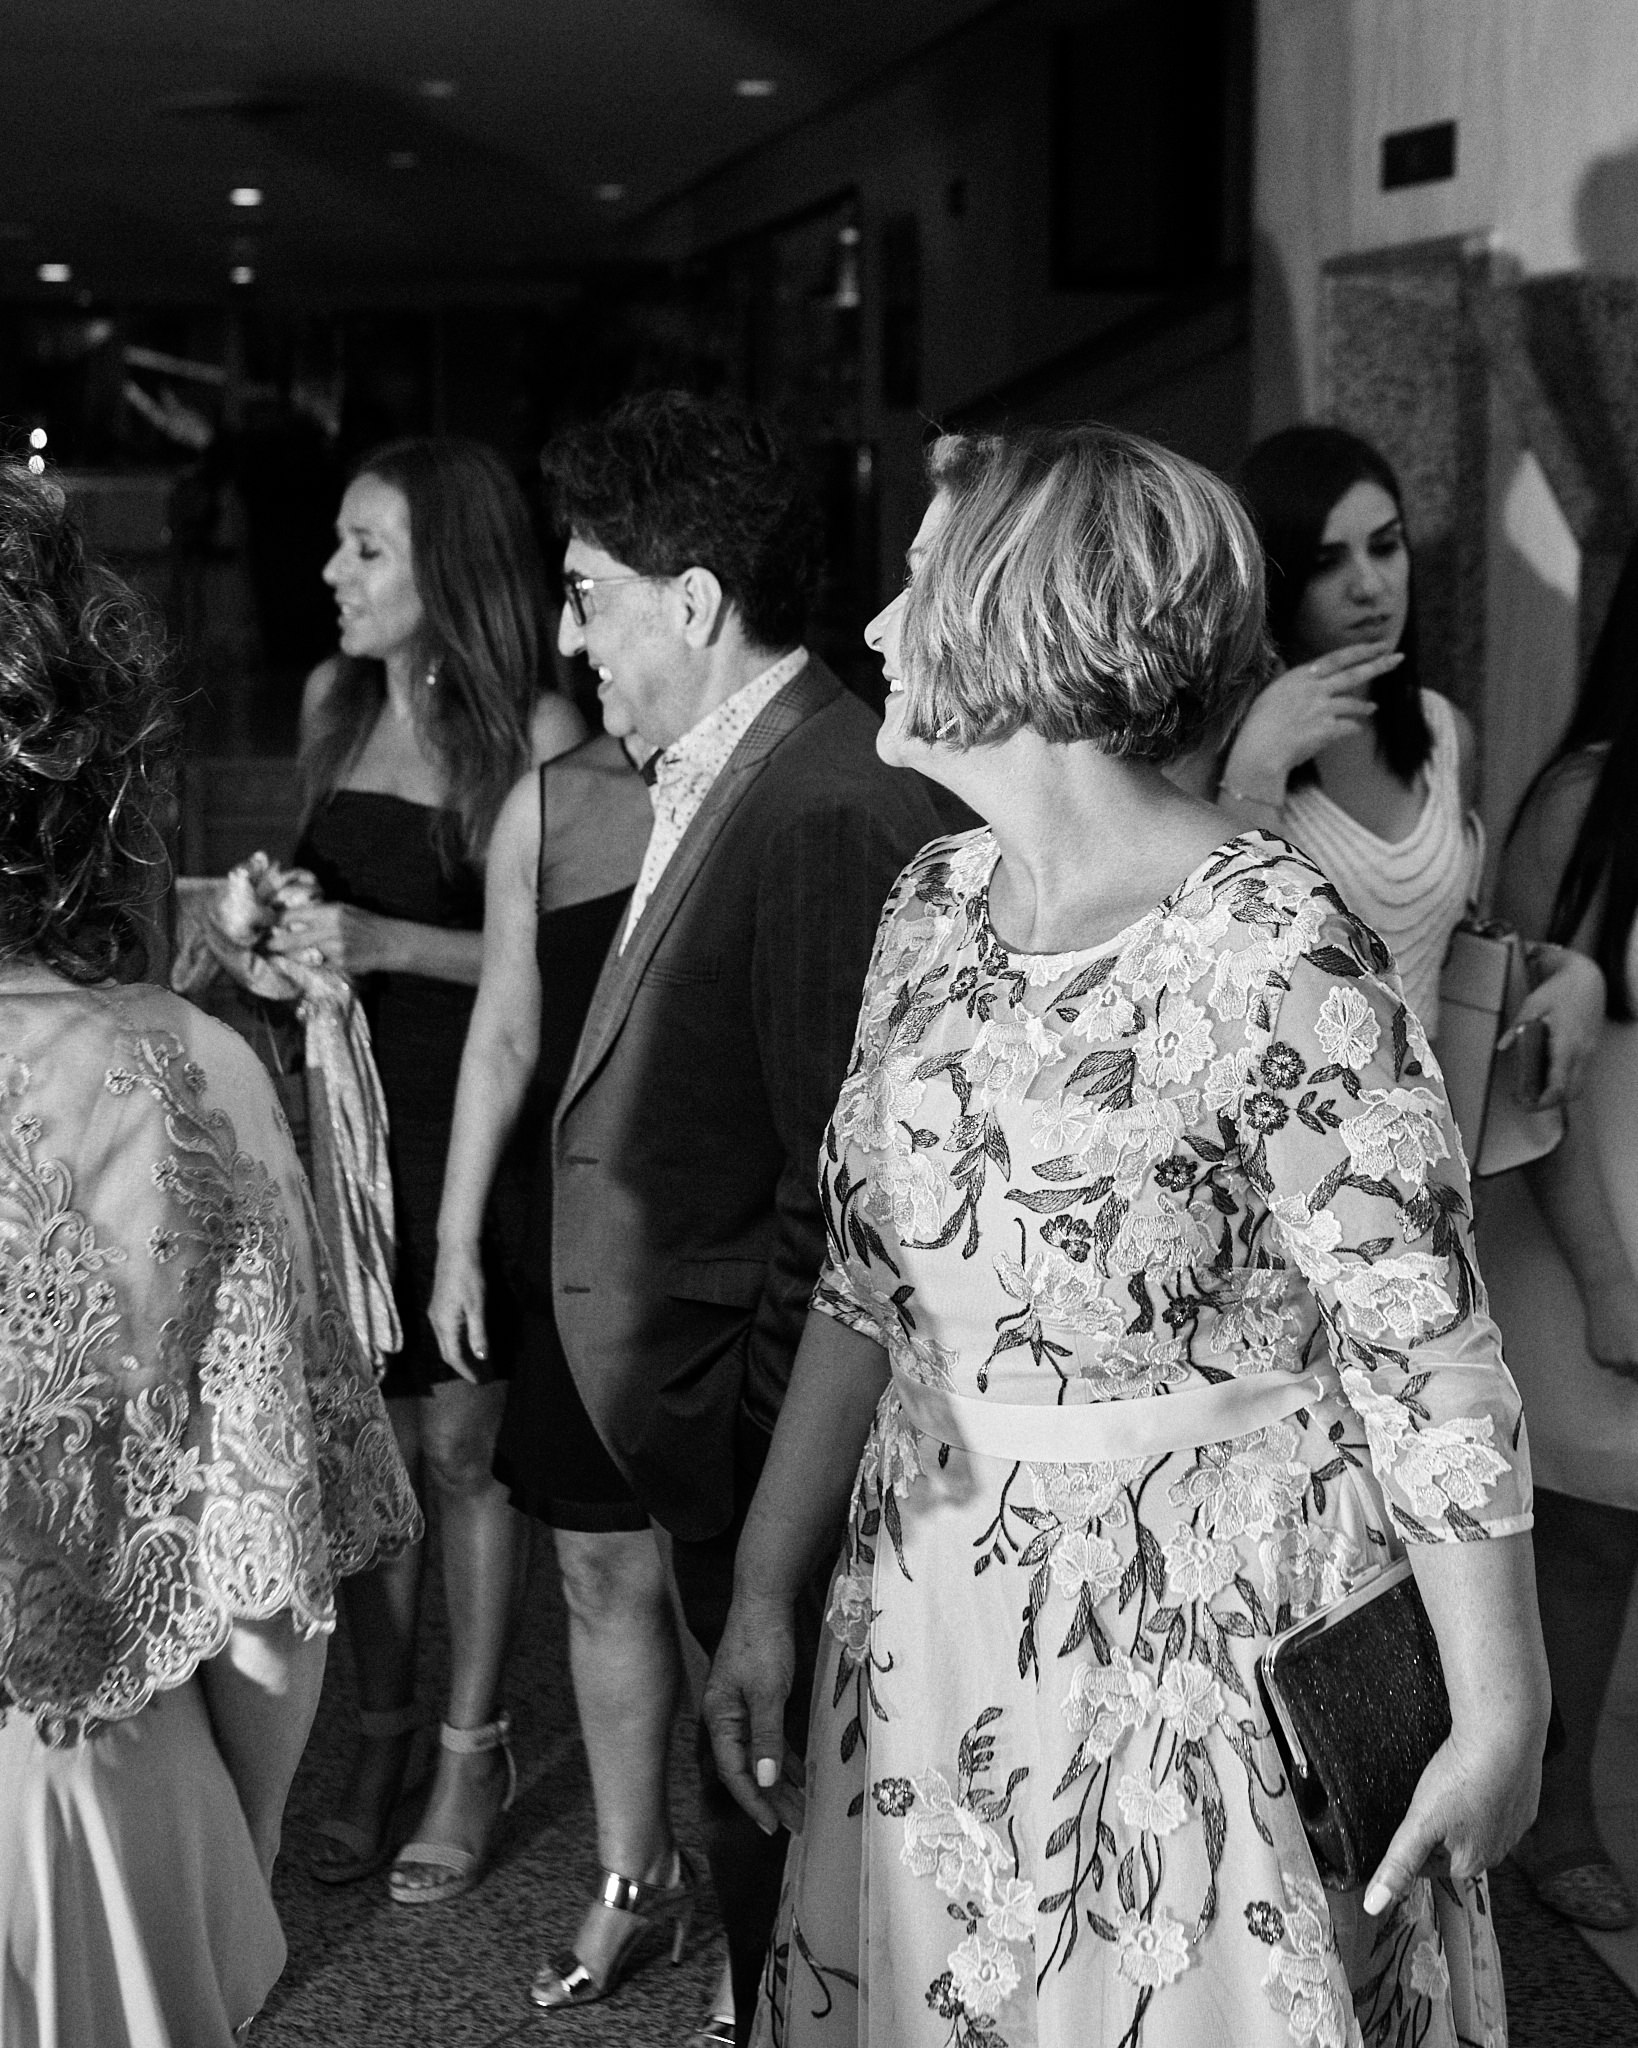 A black and white wedding photograph from the wedding of Rima and Ibrahim, held at the Palm Beach hotel in Larnaca, Cyprus  - by International destination wedding photographer -  Richard King  A wedding full of Lebaneese charm.